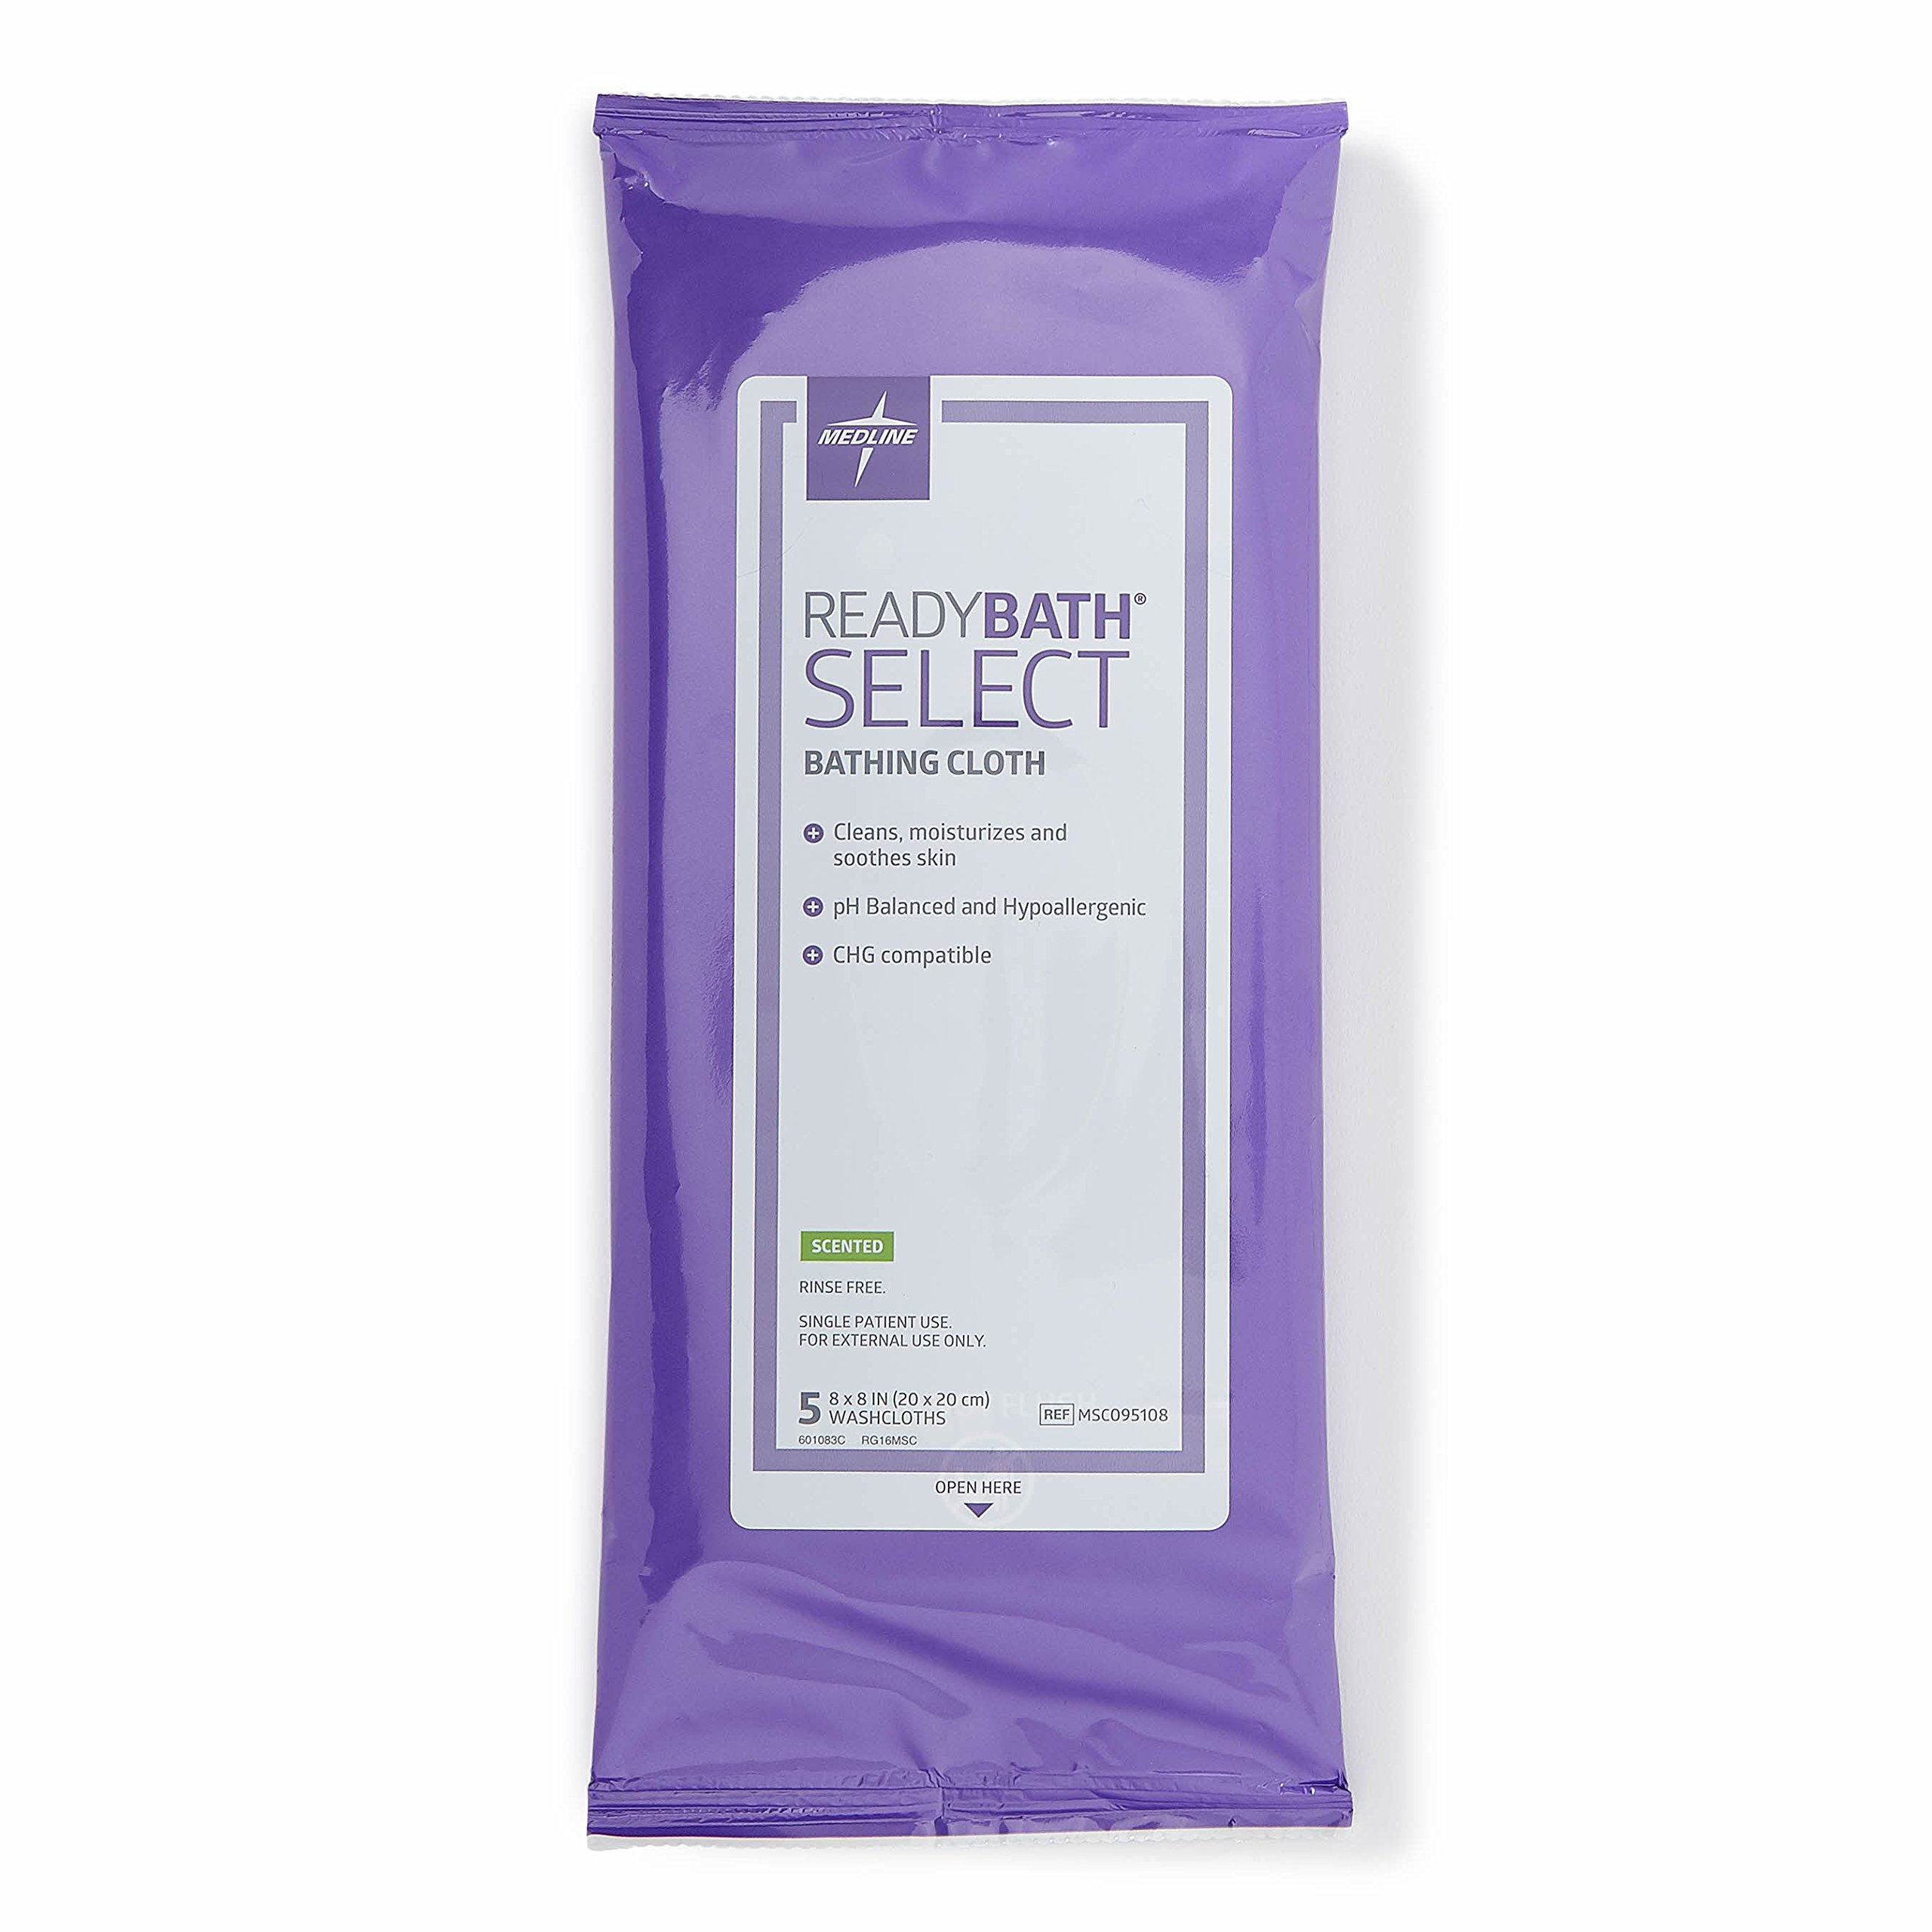 Medline ReadyBath Select Body Cleansing Cloth Wipes, Scented, Medium Weight Wipes (5 Count Pack, 30 Packs) by Medline